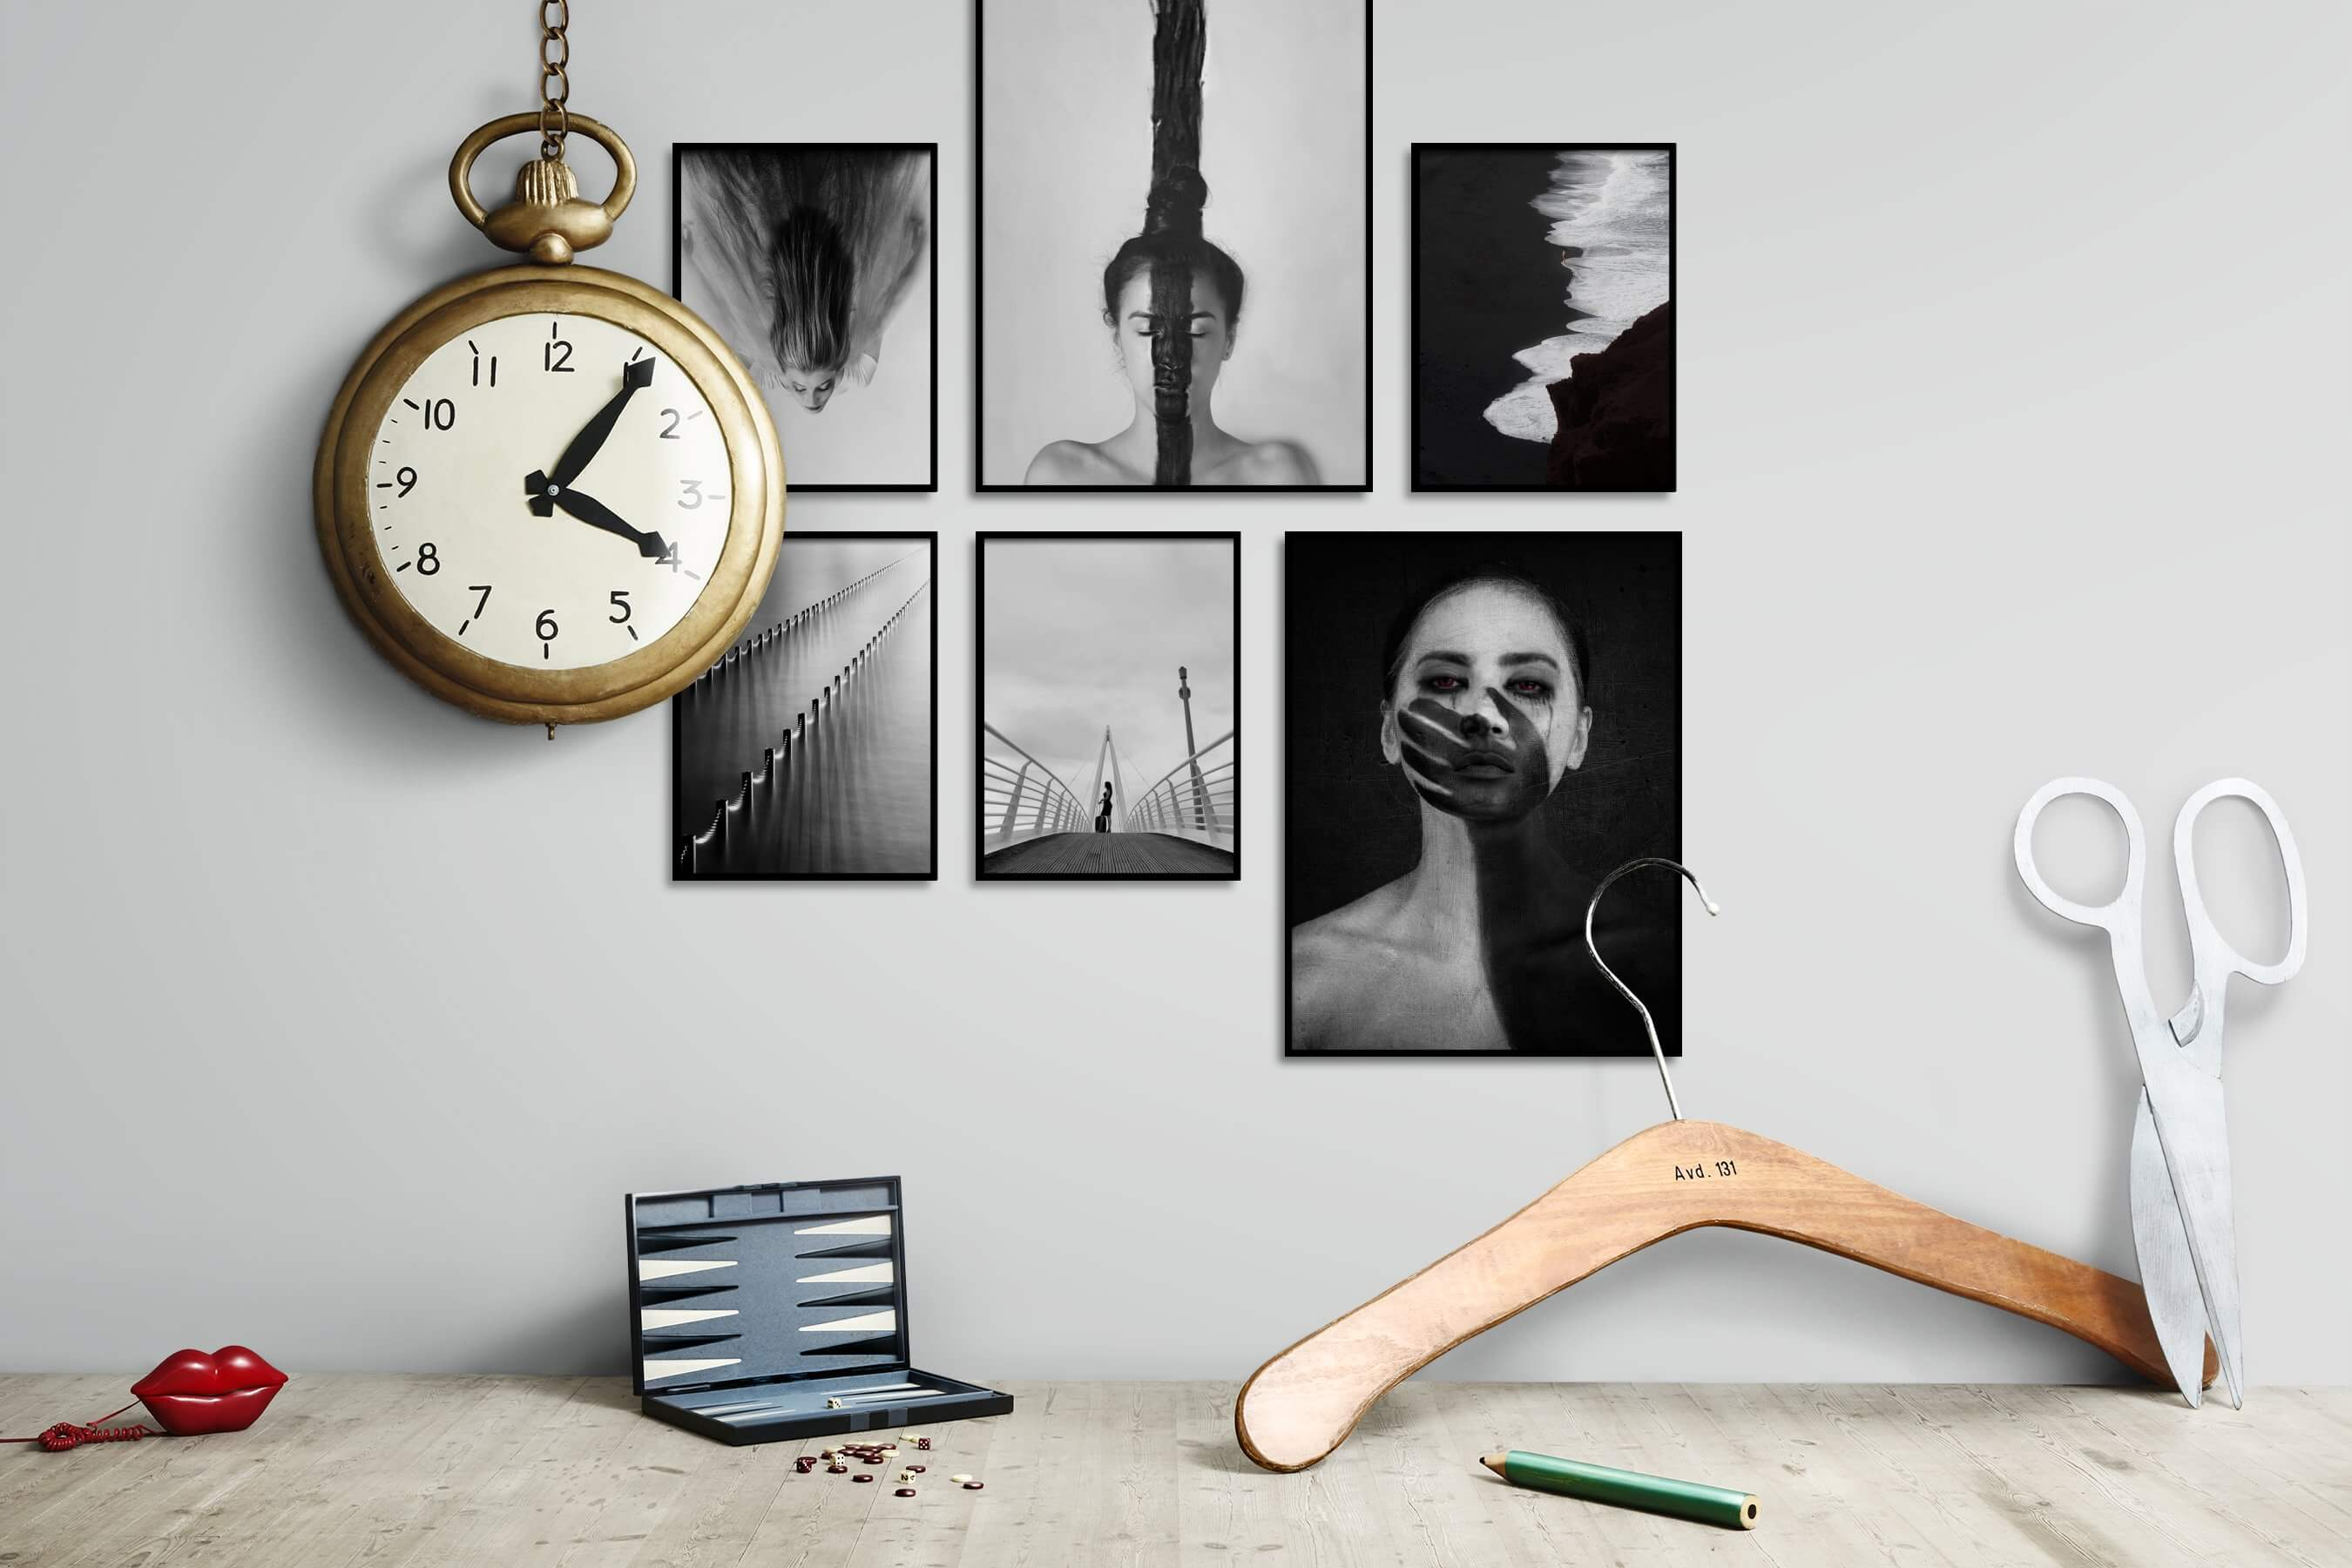 Gallery wall idea with six framed pictures arranged on a wall depicting Fashion & Beauty, Black & White, For the Moderate, Artsy, For the Minimalist, Dark Tones, and Beach & Water